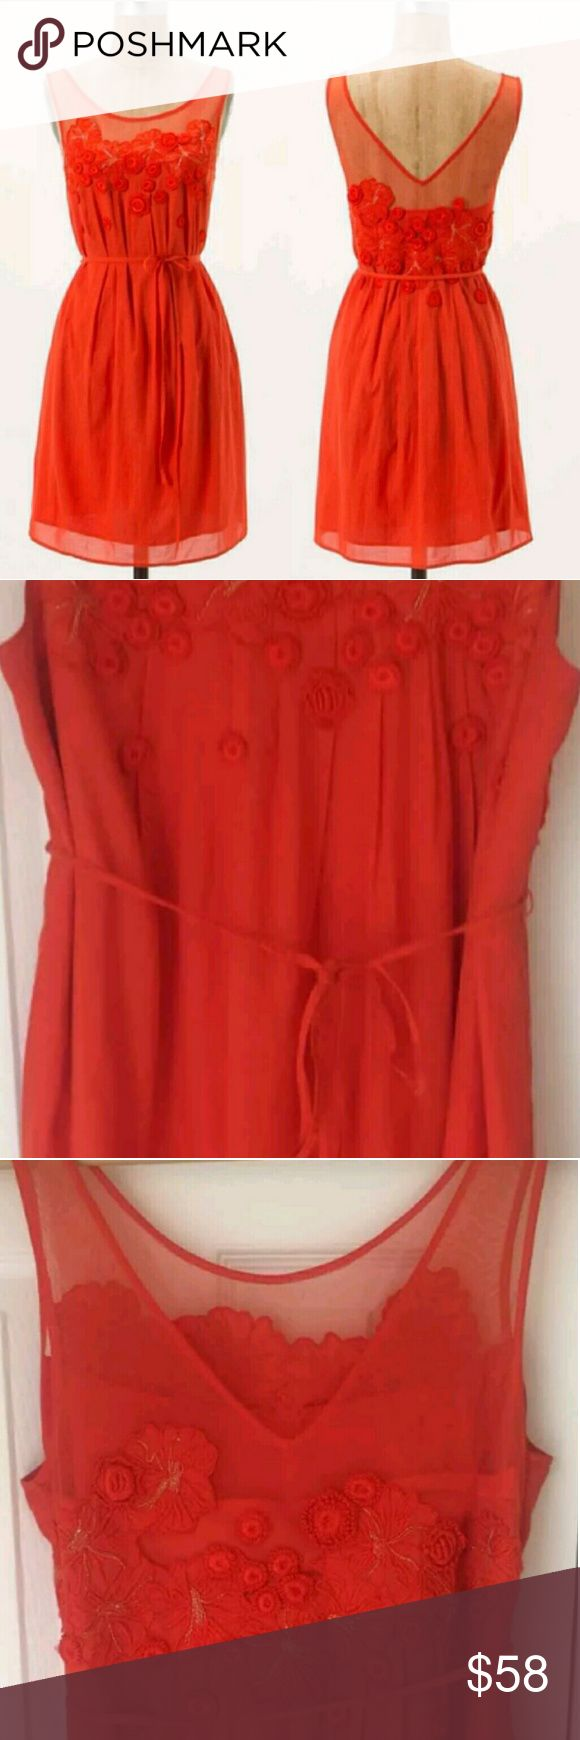 🆕Anthropologie✨ Blood Orange Tea Dress Brand new without tags! Purchased for a wedding and never returned it. Beautifully embroidered sheer neckline is only the beginning of Meadow Rue's whimsical frock. Gorgeous flowers adorn the bust! Truly lovely detail. Perfect for a special event and very figure flattering!💗 Line marked through brand to prevent store return. Blood orange. Soft fabric & easy to care for!👍  By Meadow Rue Removable belt Pullover styling Rayon, cotton; polyester lining…